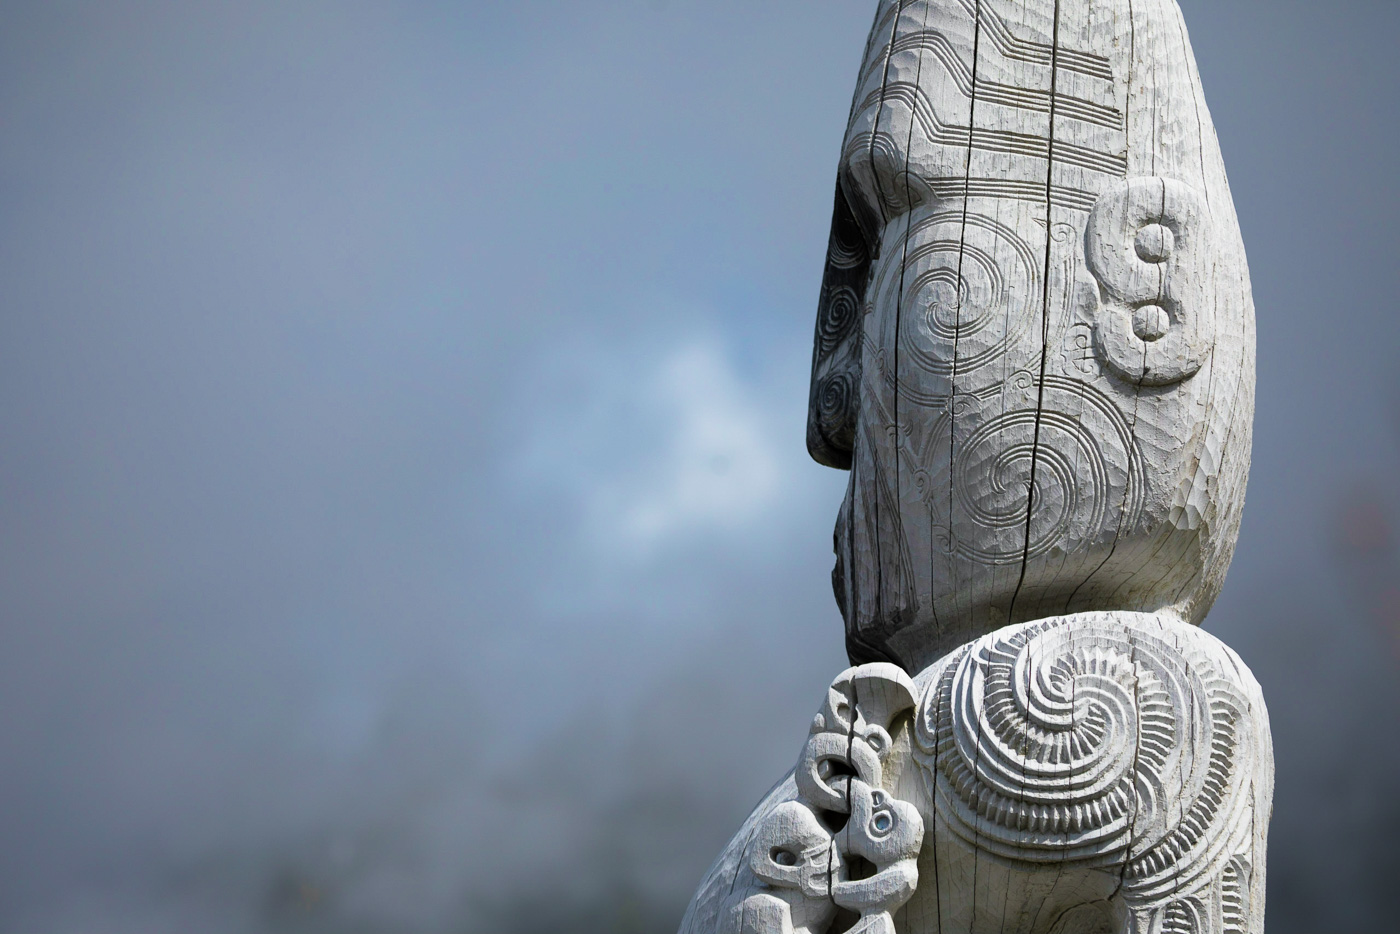 Maori culture is still an integral part of New Zealand. This is a traditional Maori woodcarving